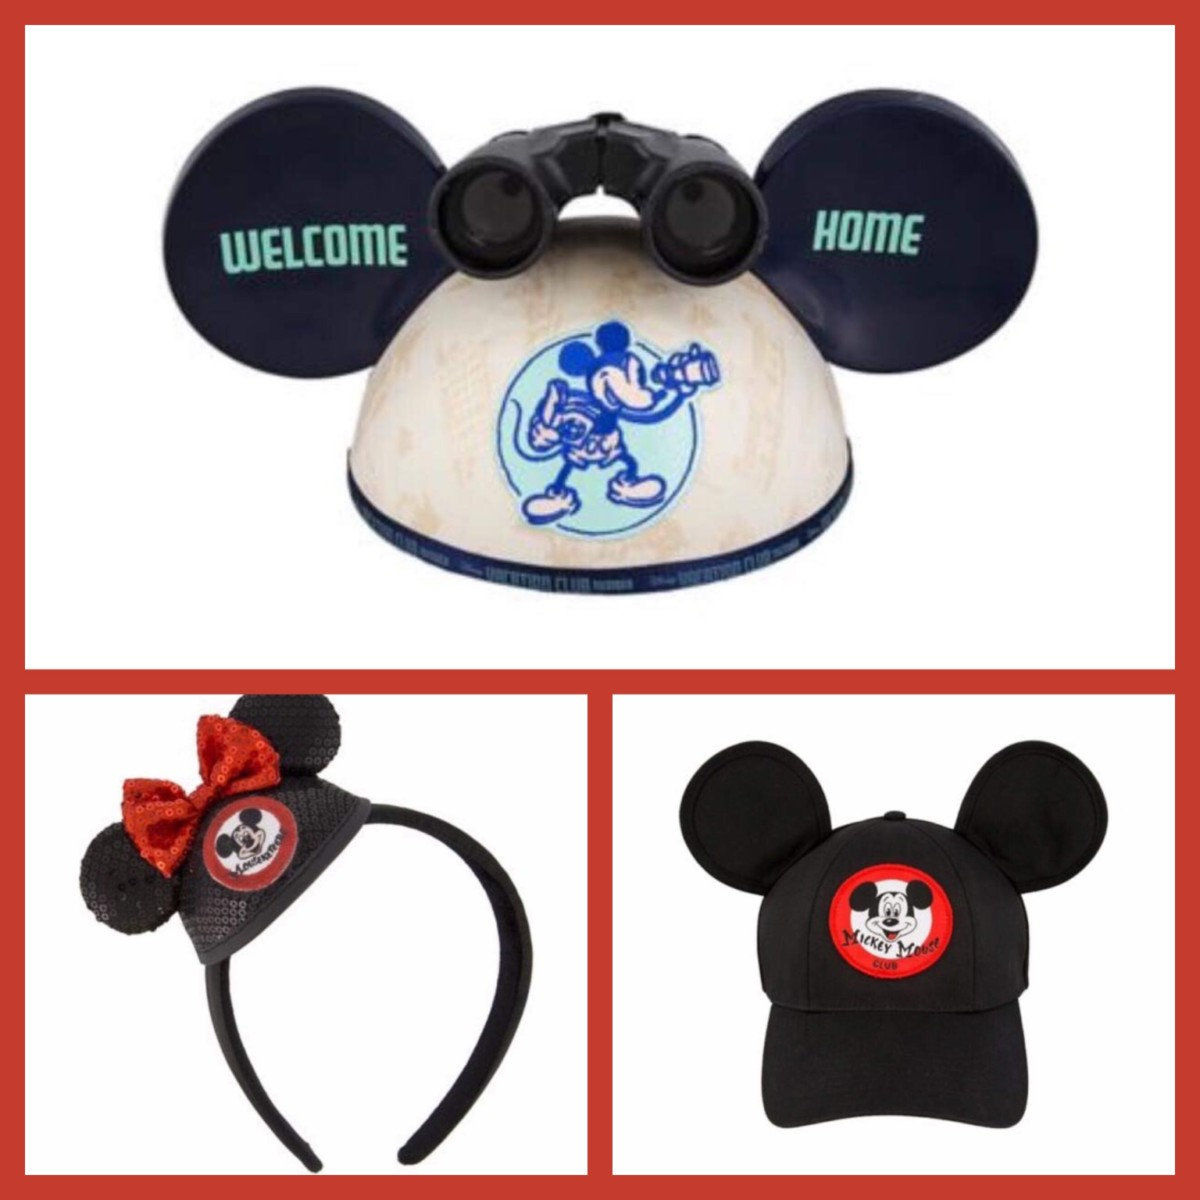 New Halloween and Christmas Ears Coming Soon! #DisneyStyle 2